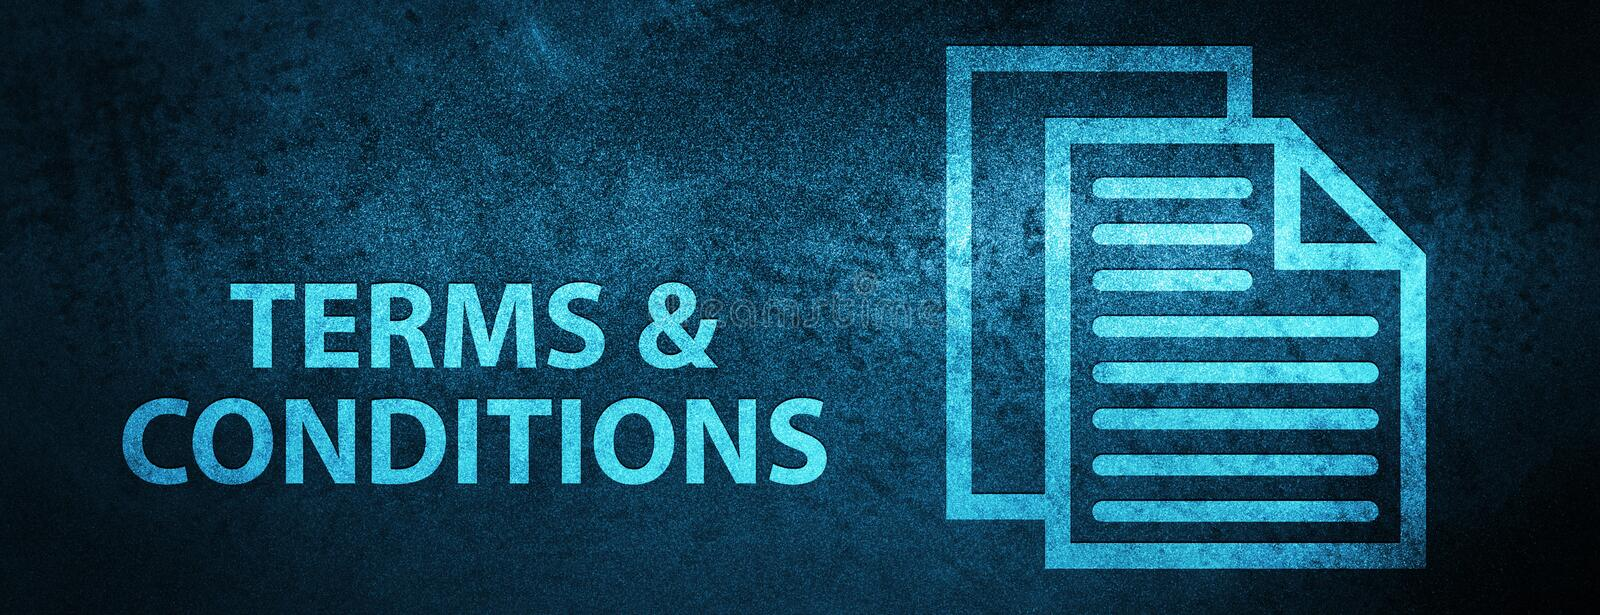 Terms and conditions (pages icon) special blue banner background. Terms and conditions (pages icon) isolated on special blue banner background abstract stock illustration